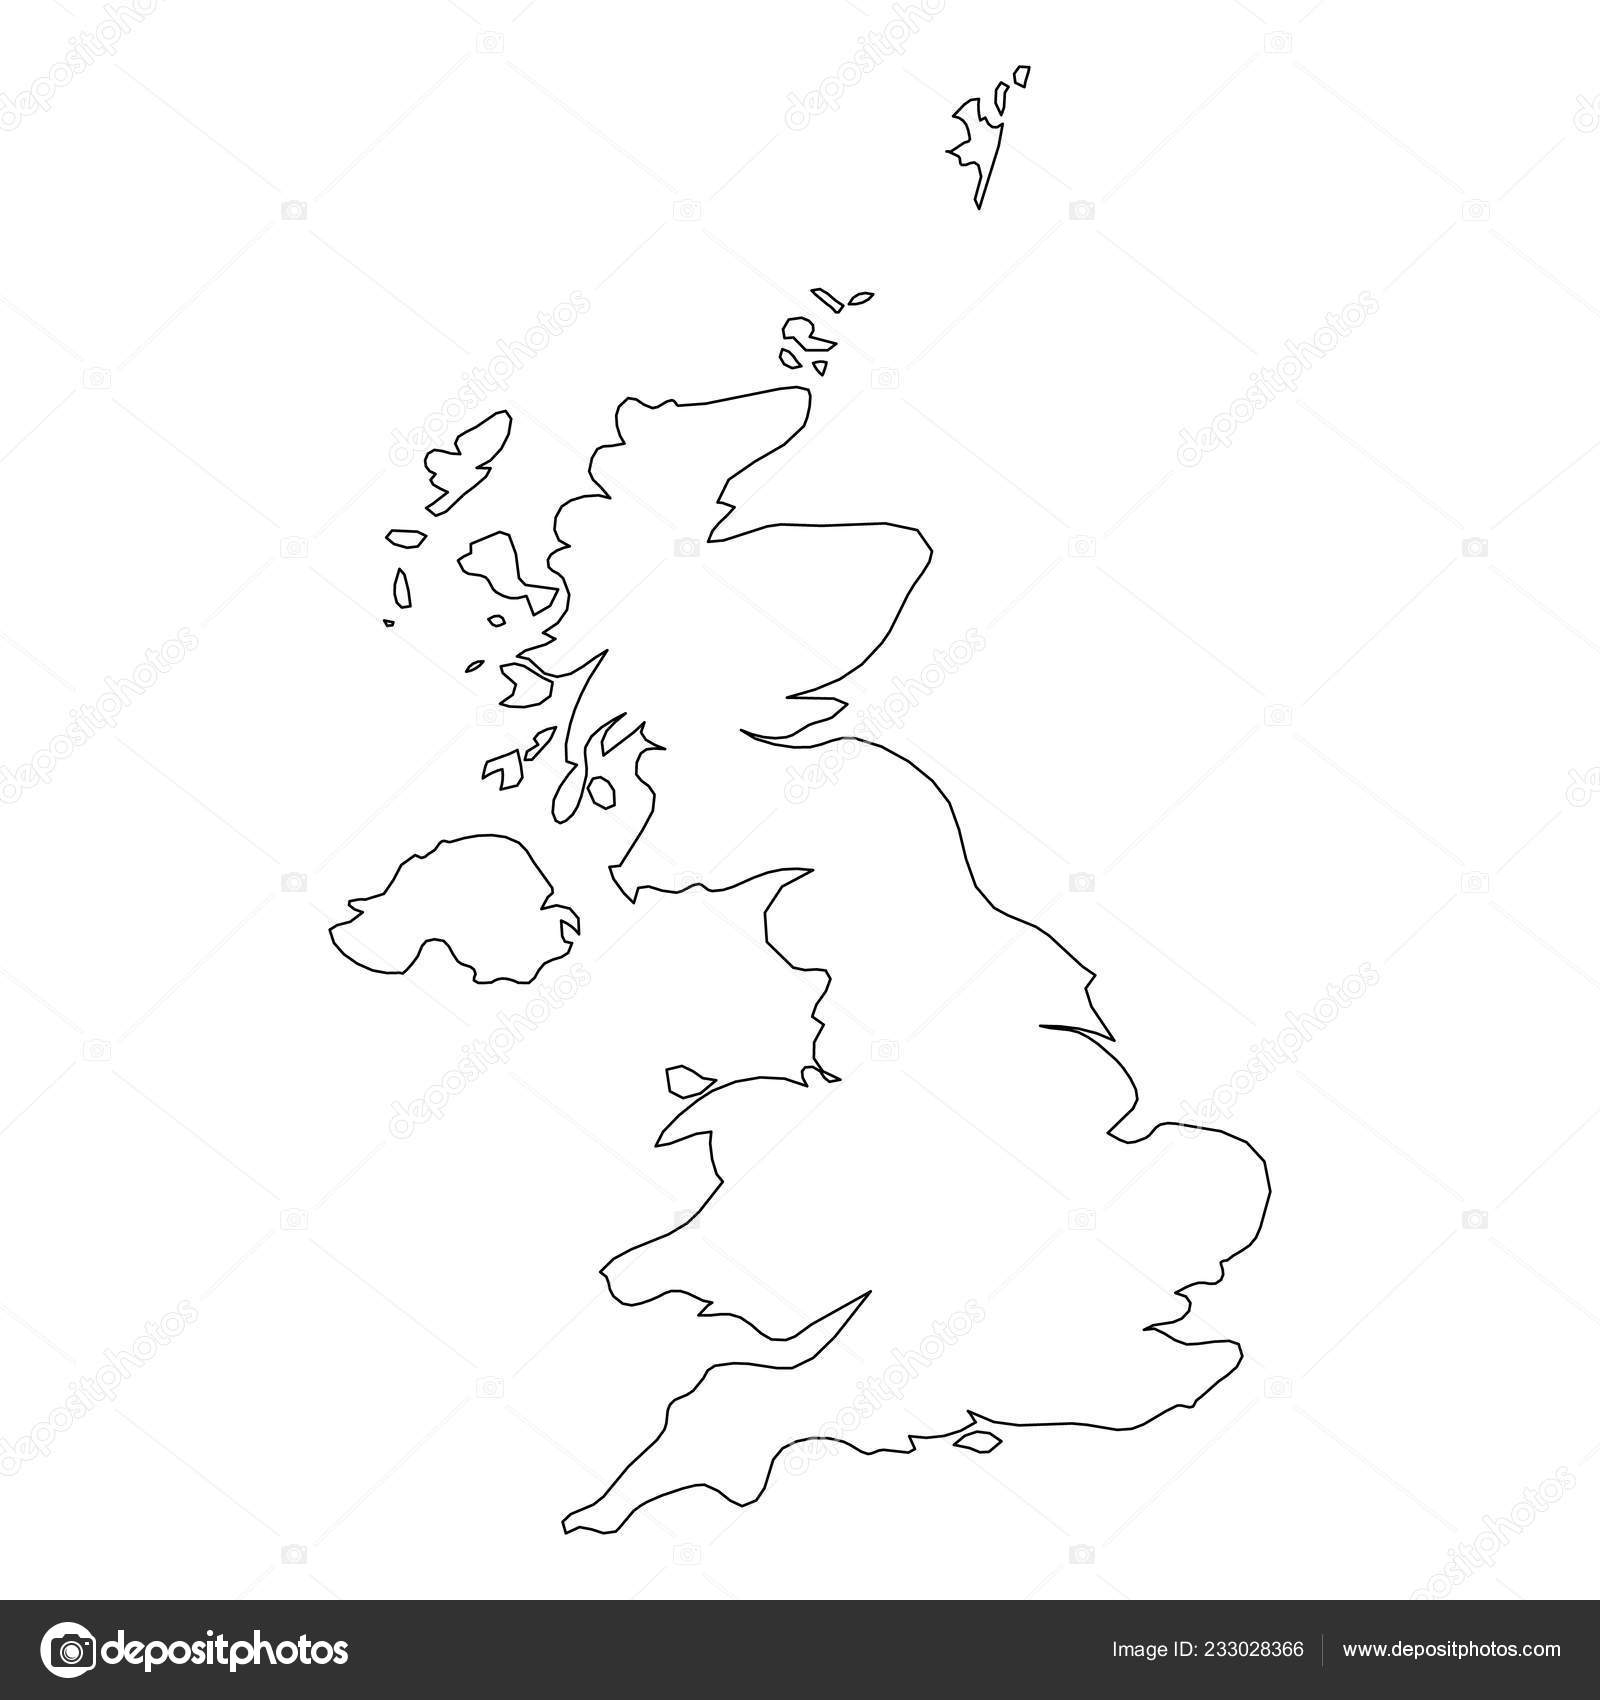 50 Shades Of Fabulous Svg: United Kingdom Of Great Britain And Northern Ireland, UK